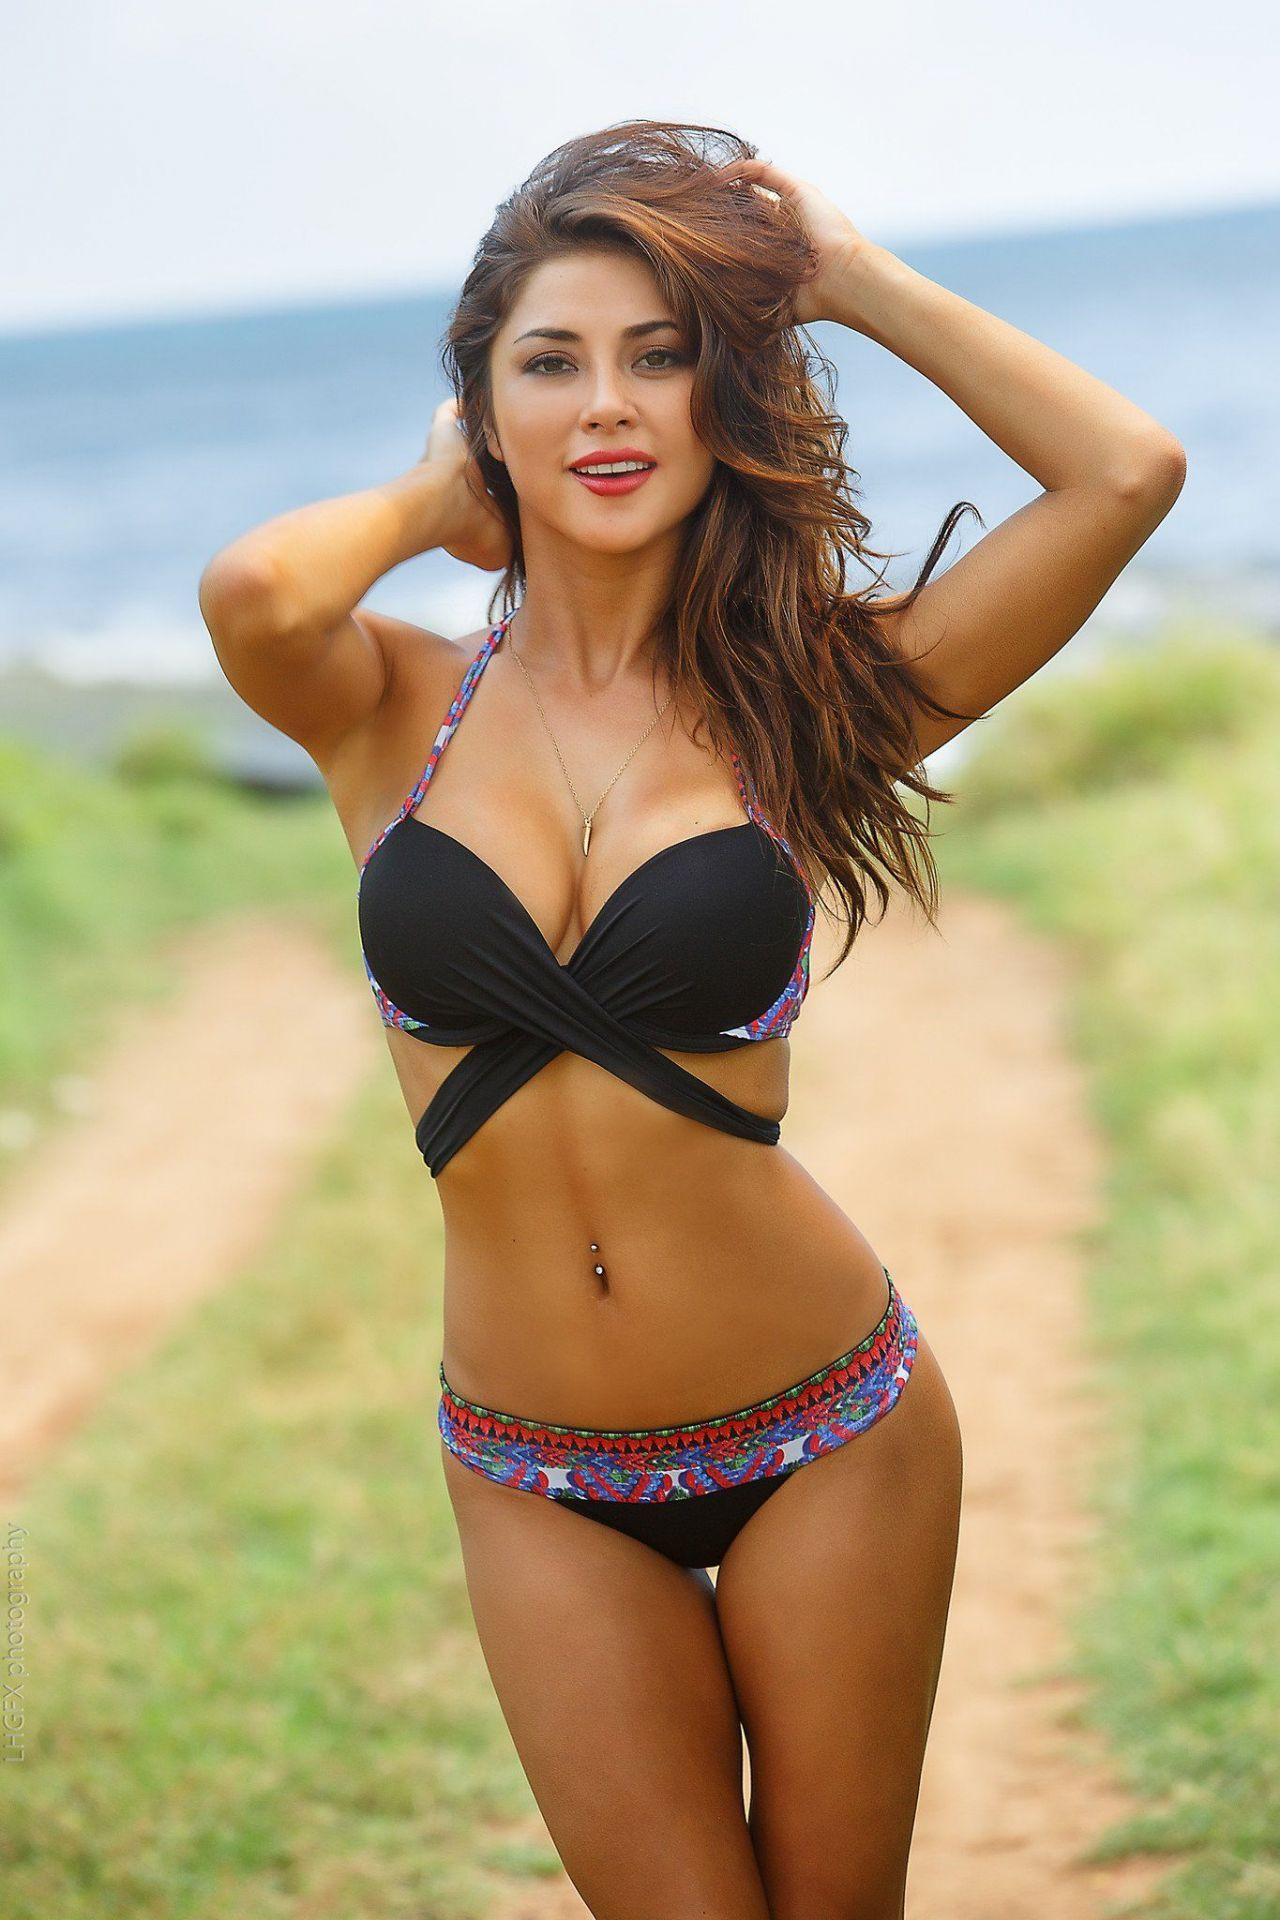 Arianny celeste sexy 2 naked (38 photo), Is a cute Celebrites pictures